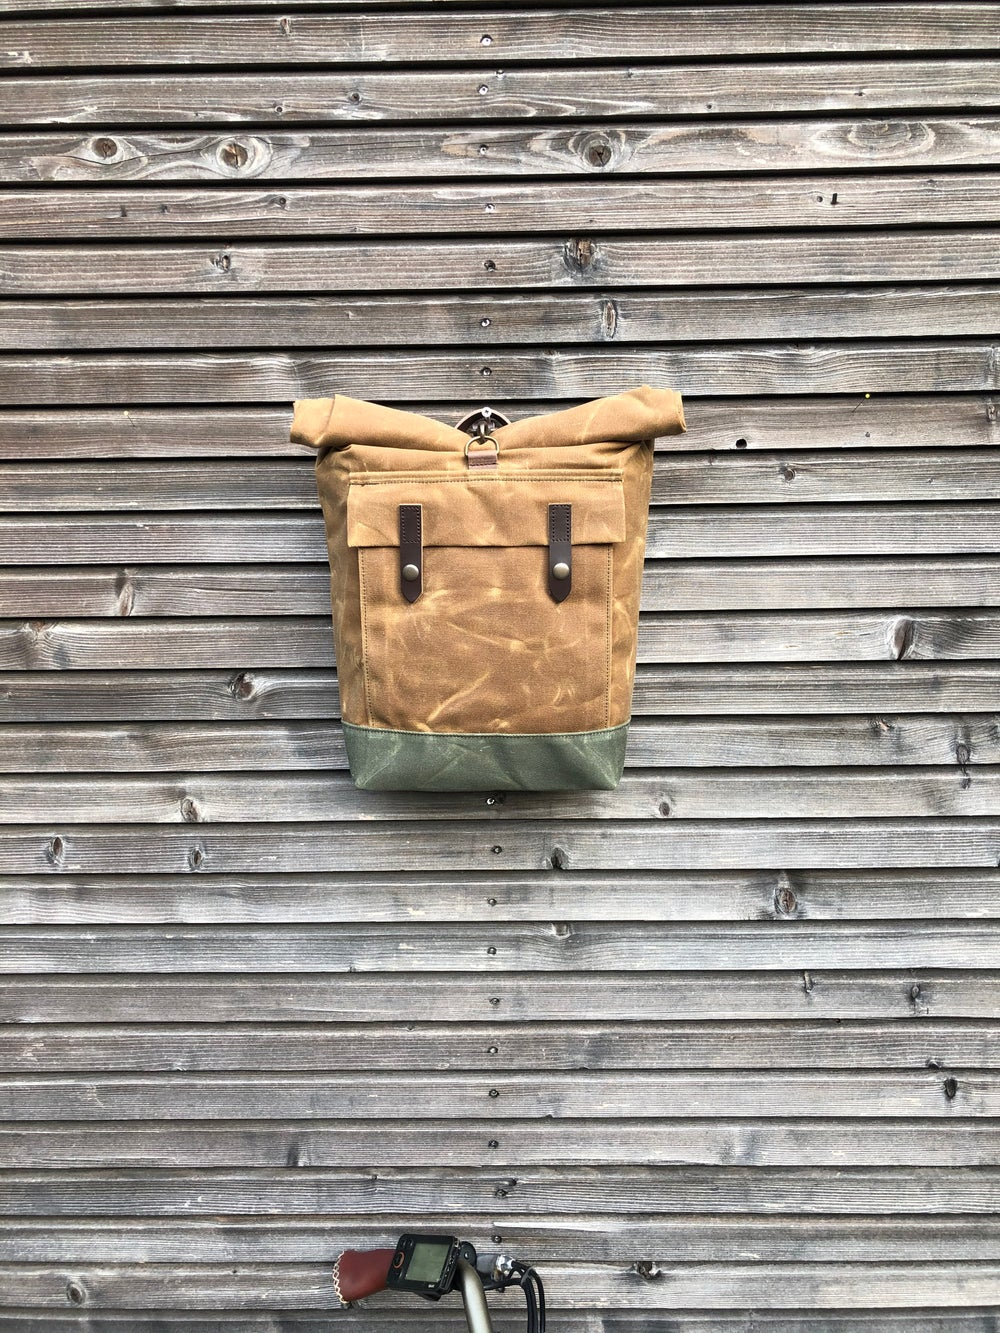 Image of Spice waxed canvas motorbike bag / Motorcycle bag / Bicycle bag in waxed canvas / Bike accessories